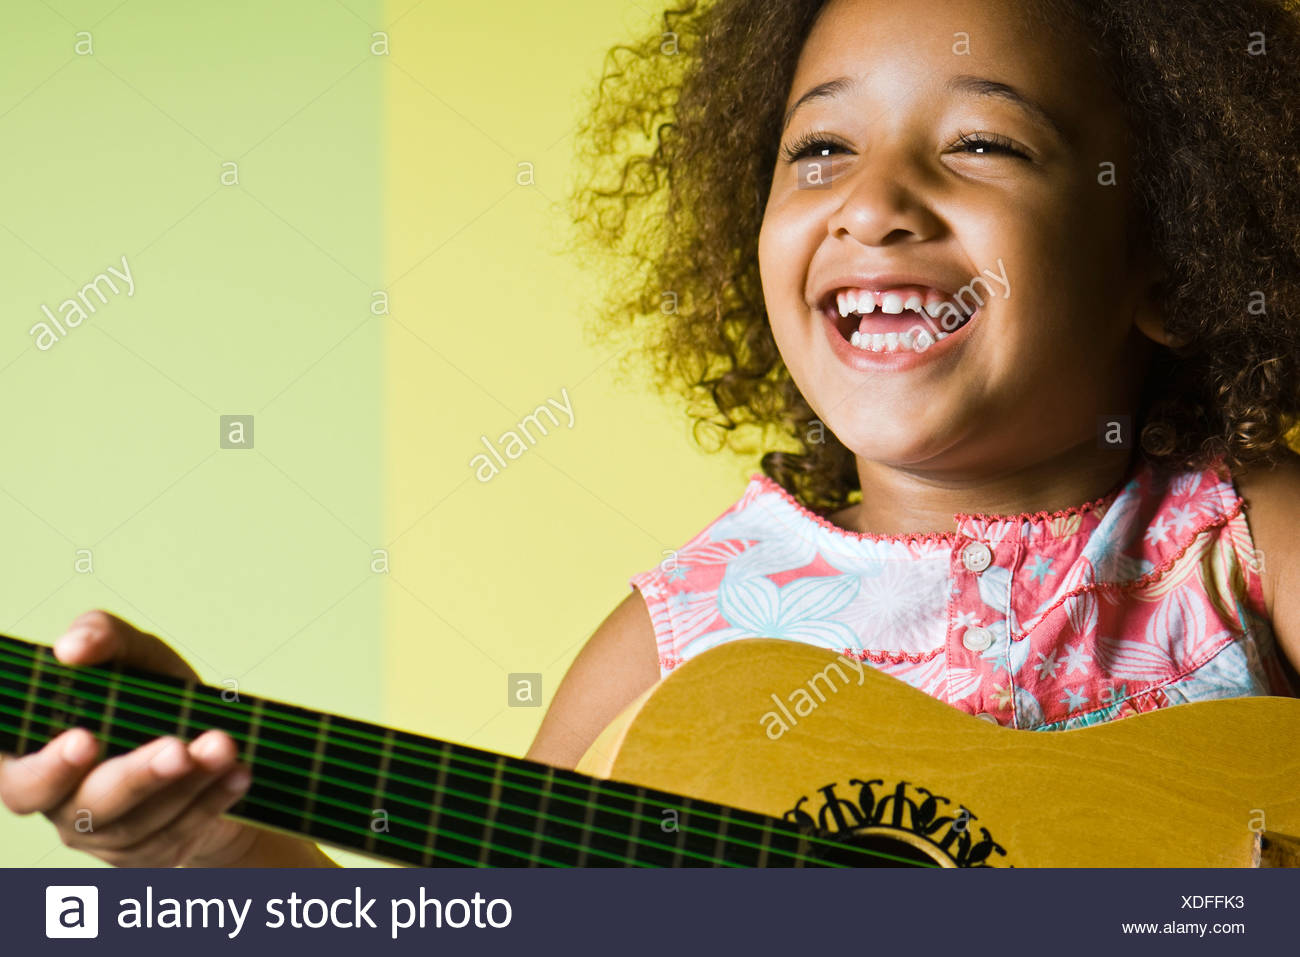 Little girl playing guitar Photo Stock